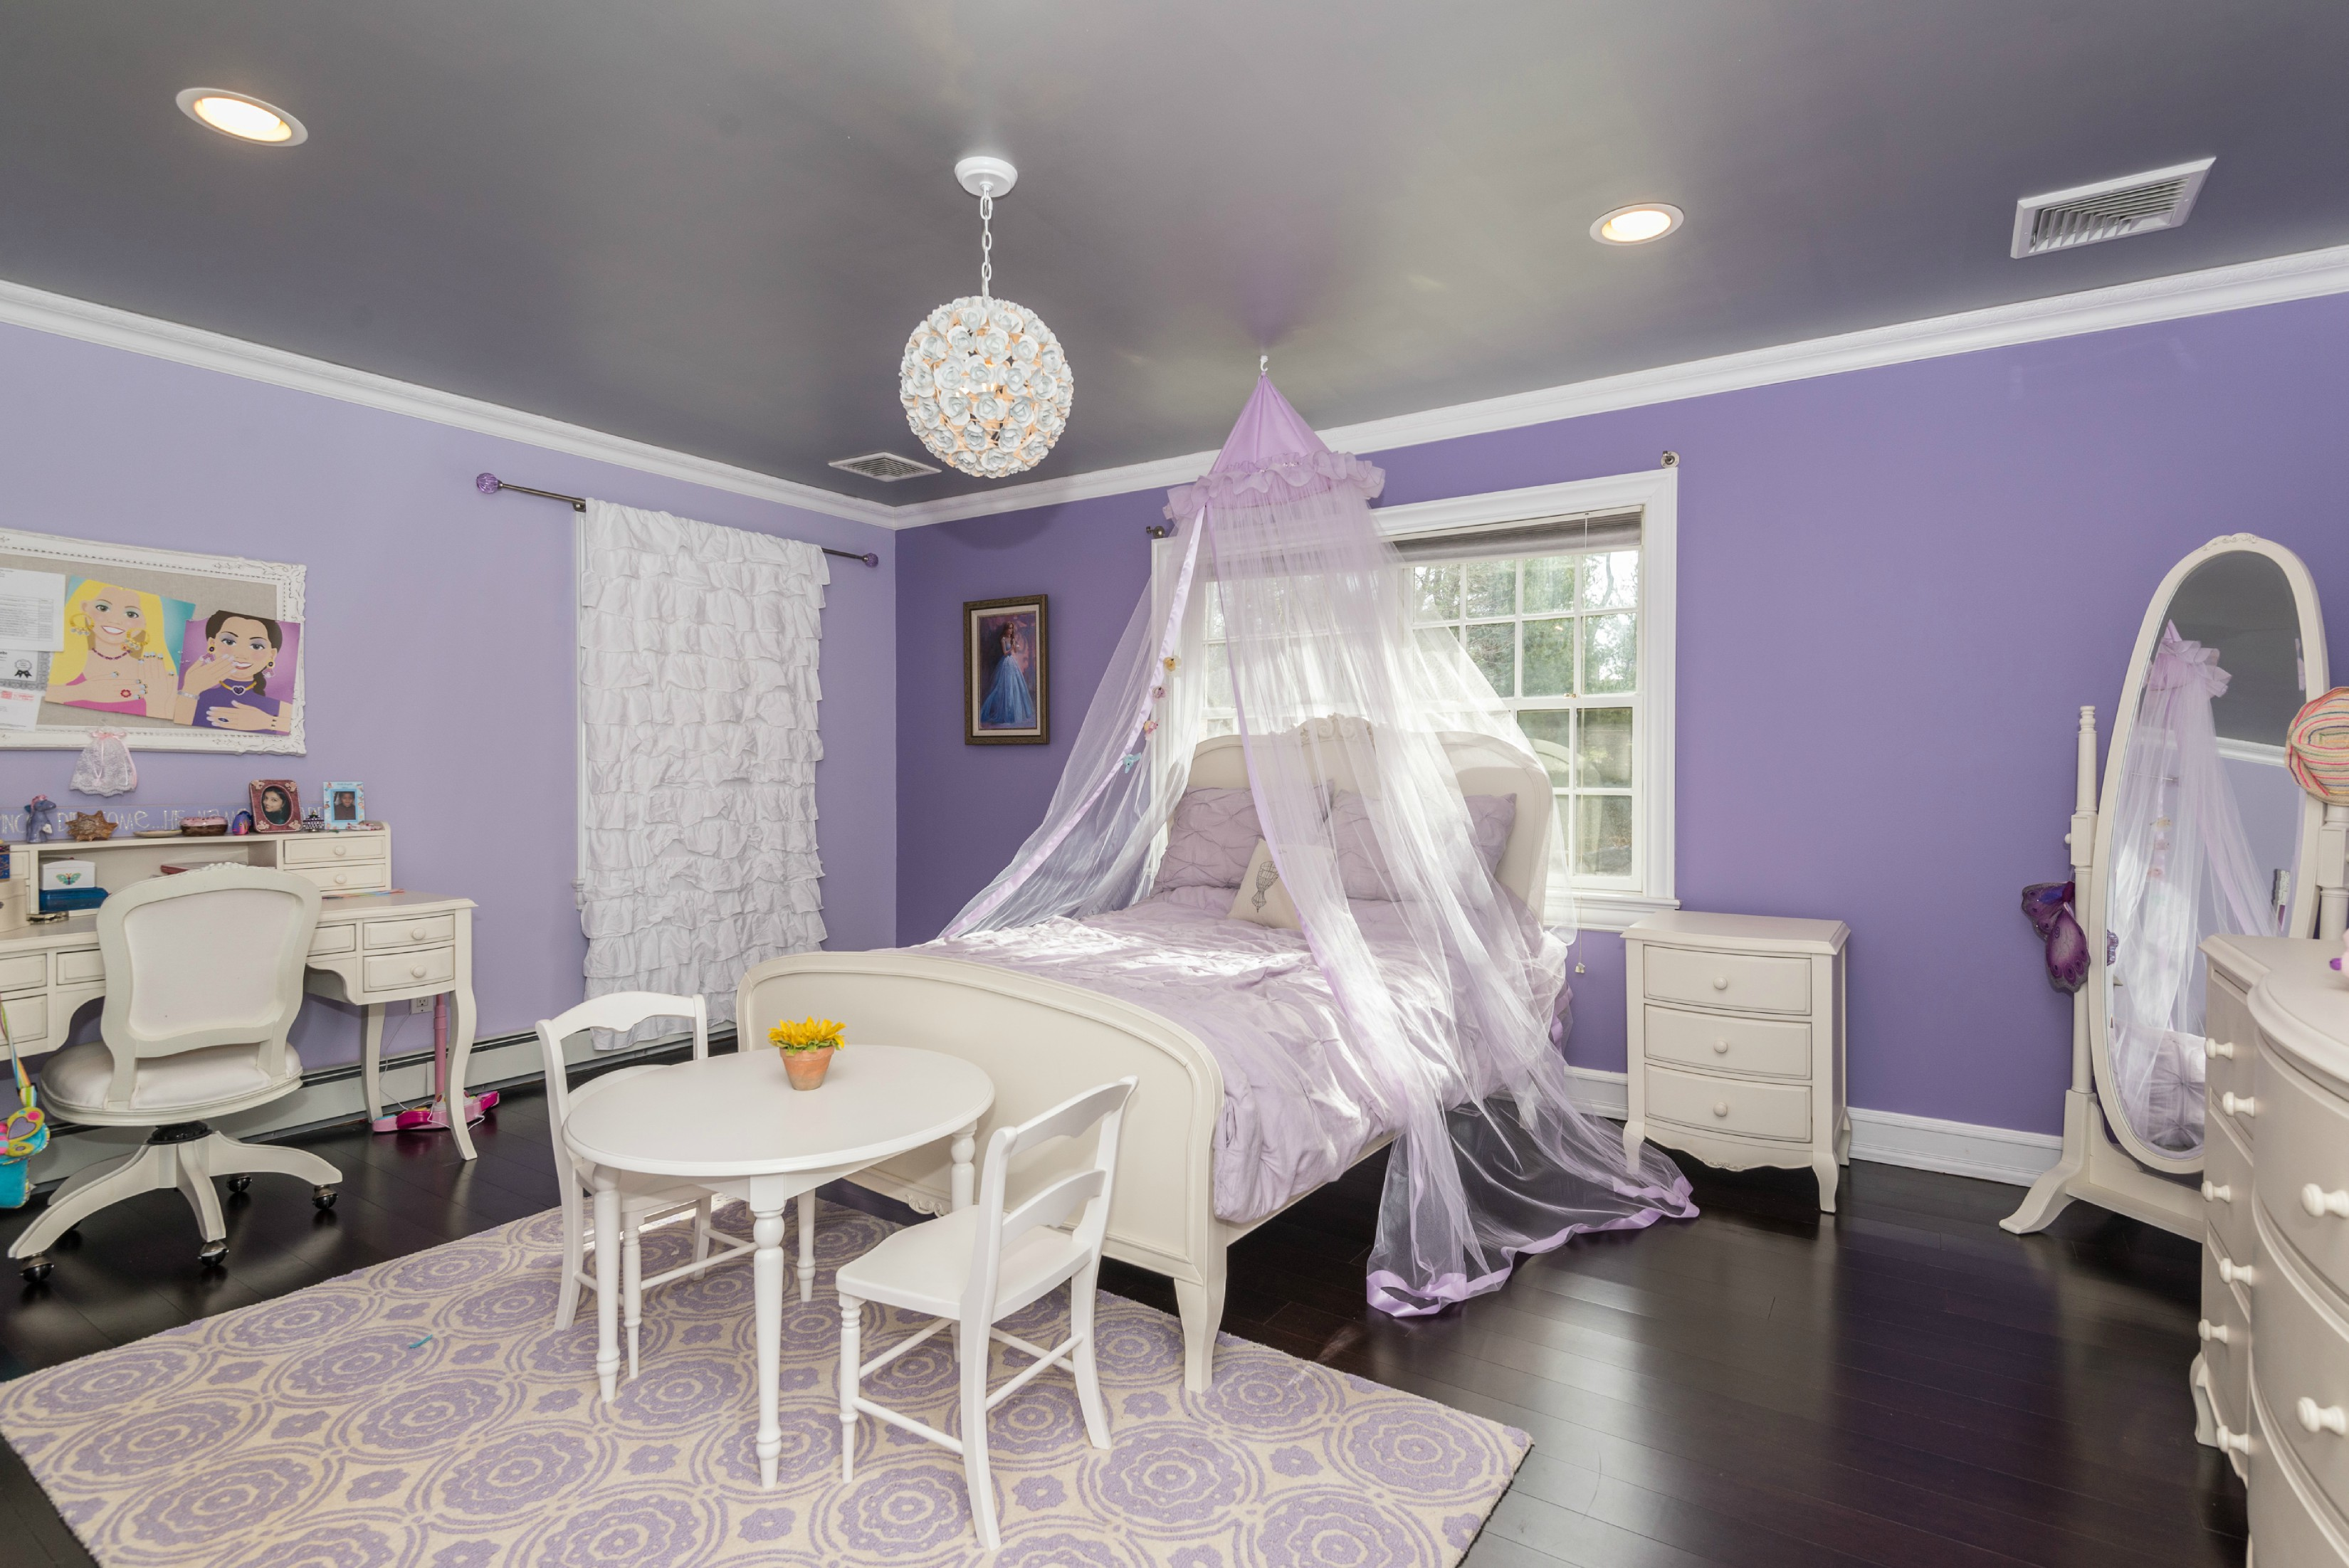 Our spectacular 1778 Route 106 Featured in Inman News' Coverage of Pantone's Color of the Year, Ultra Violet